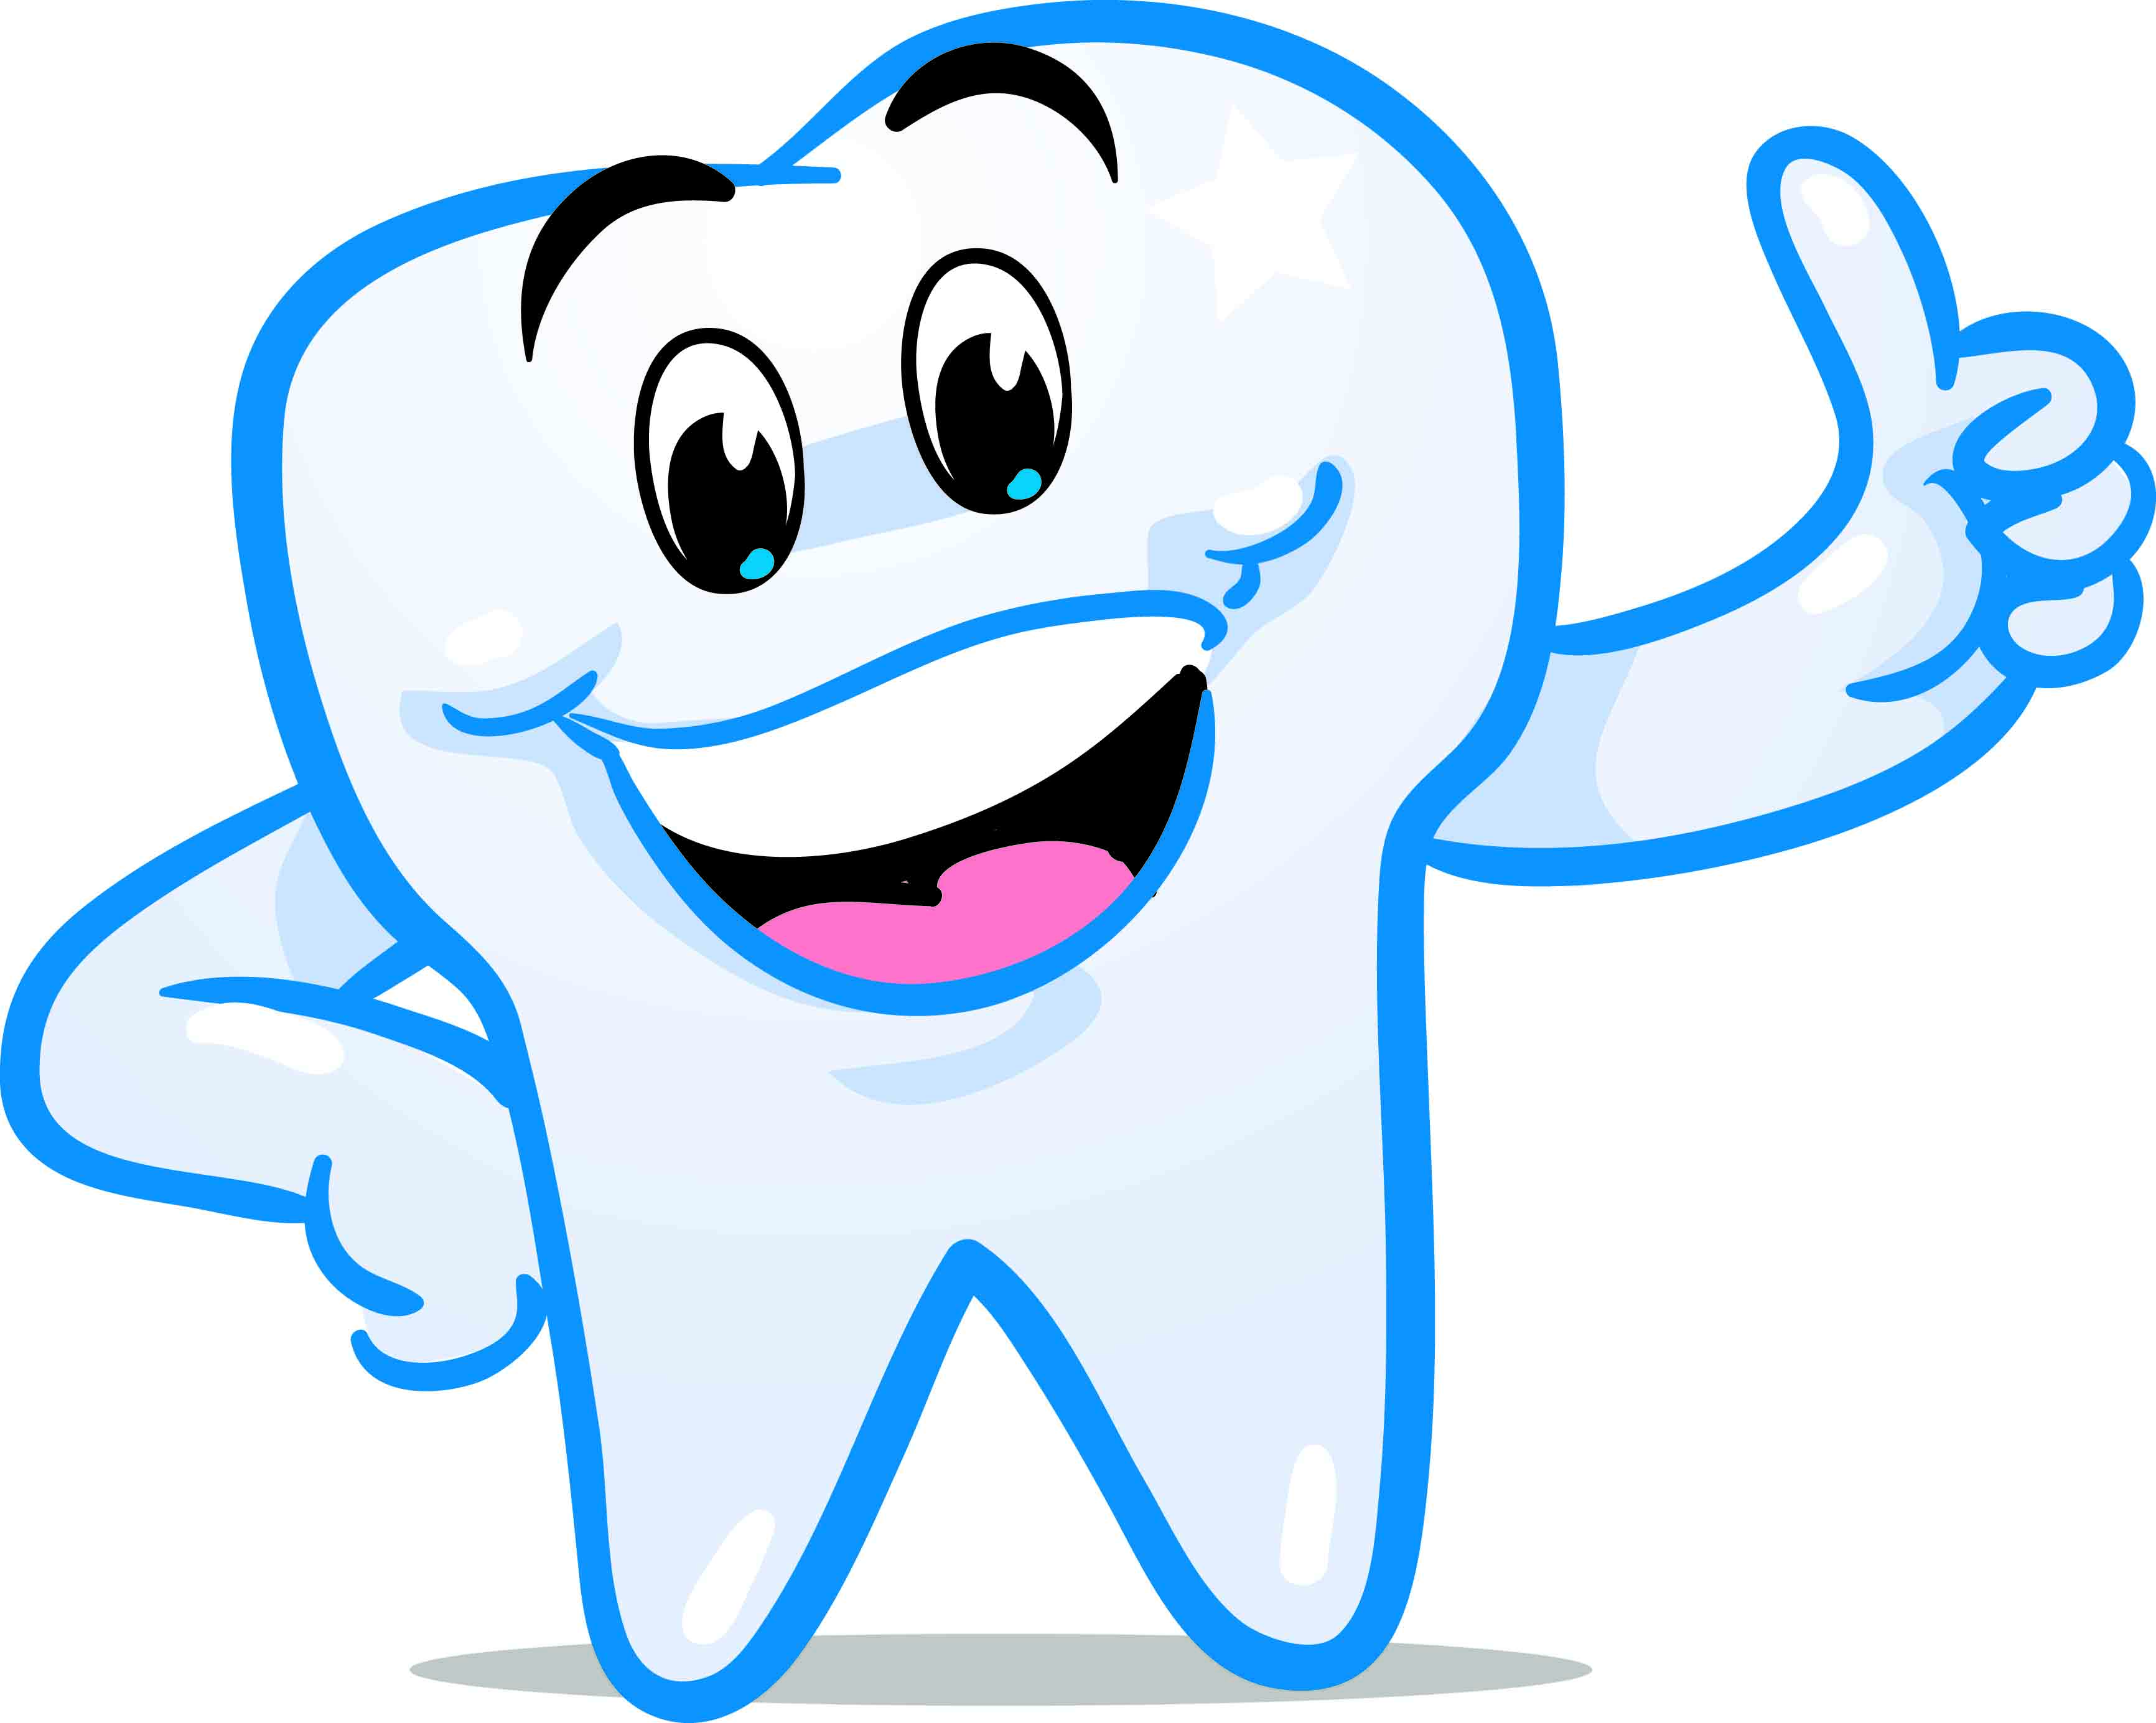 Free cartoon images of. Tooth clipart tooth smile